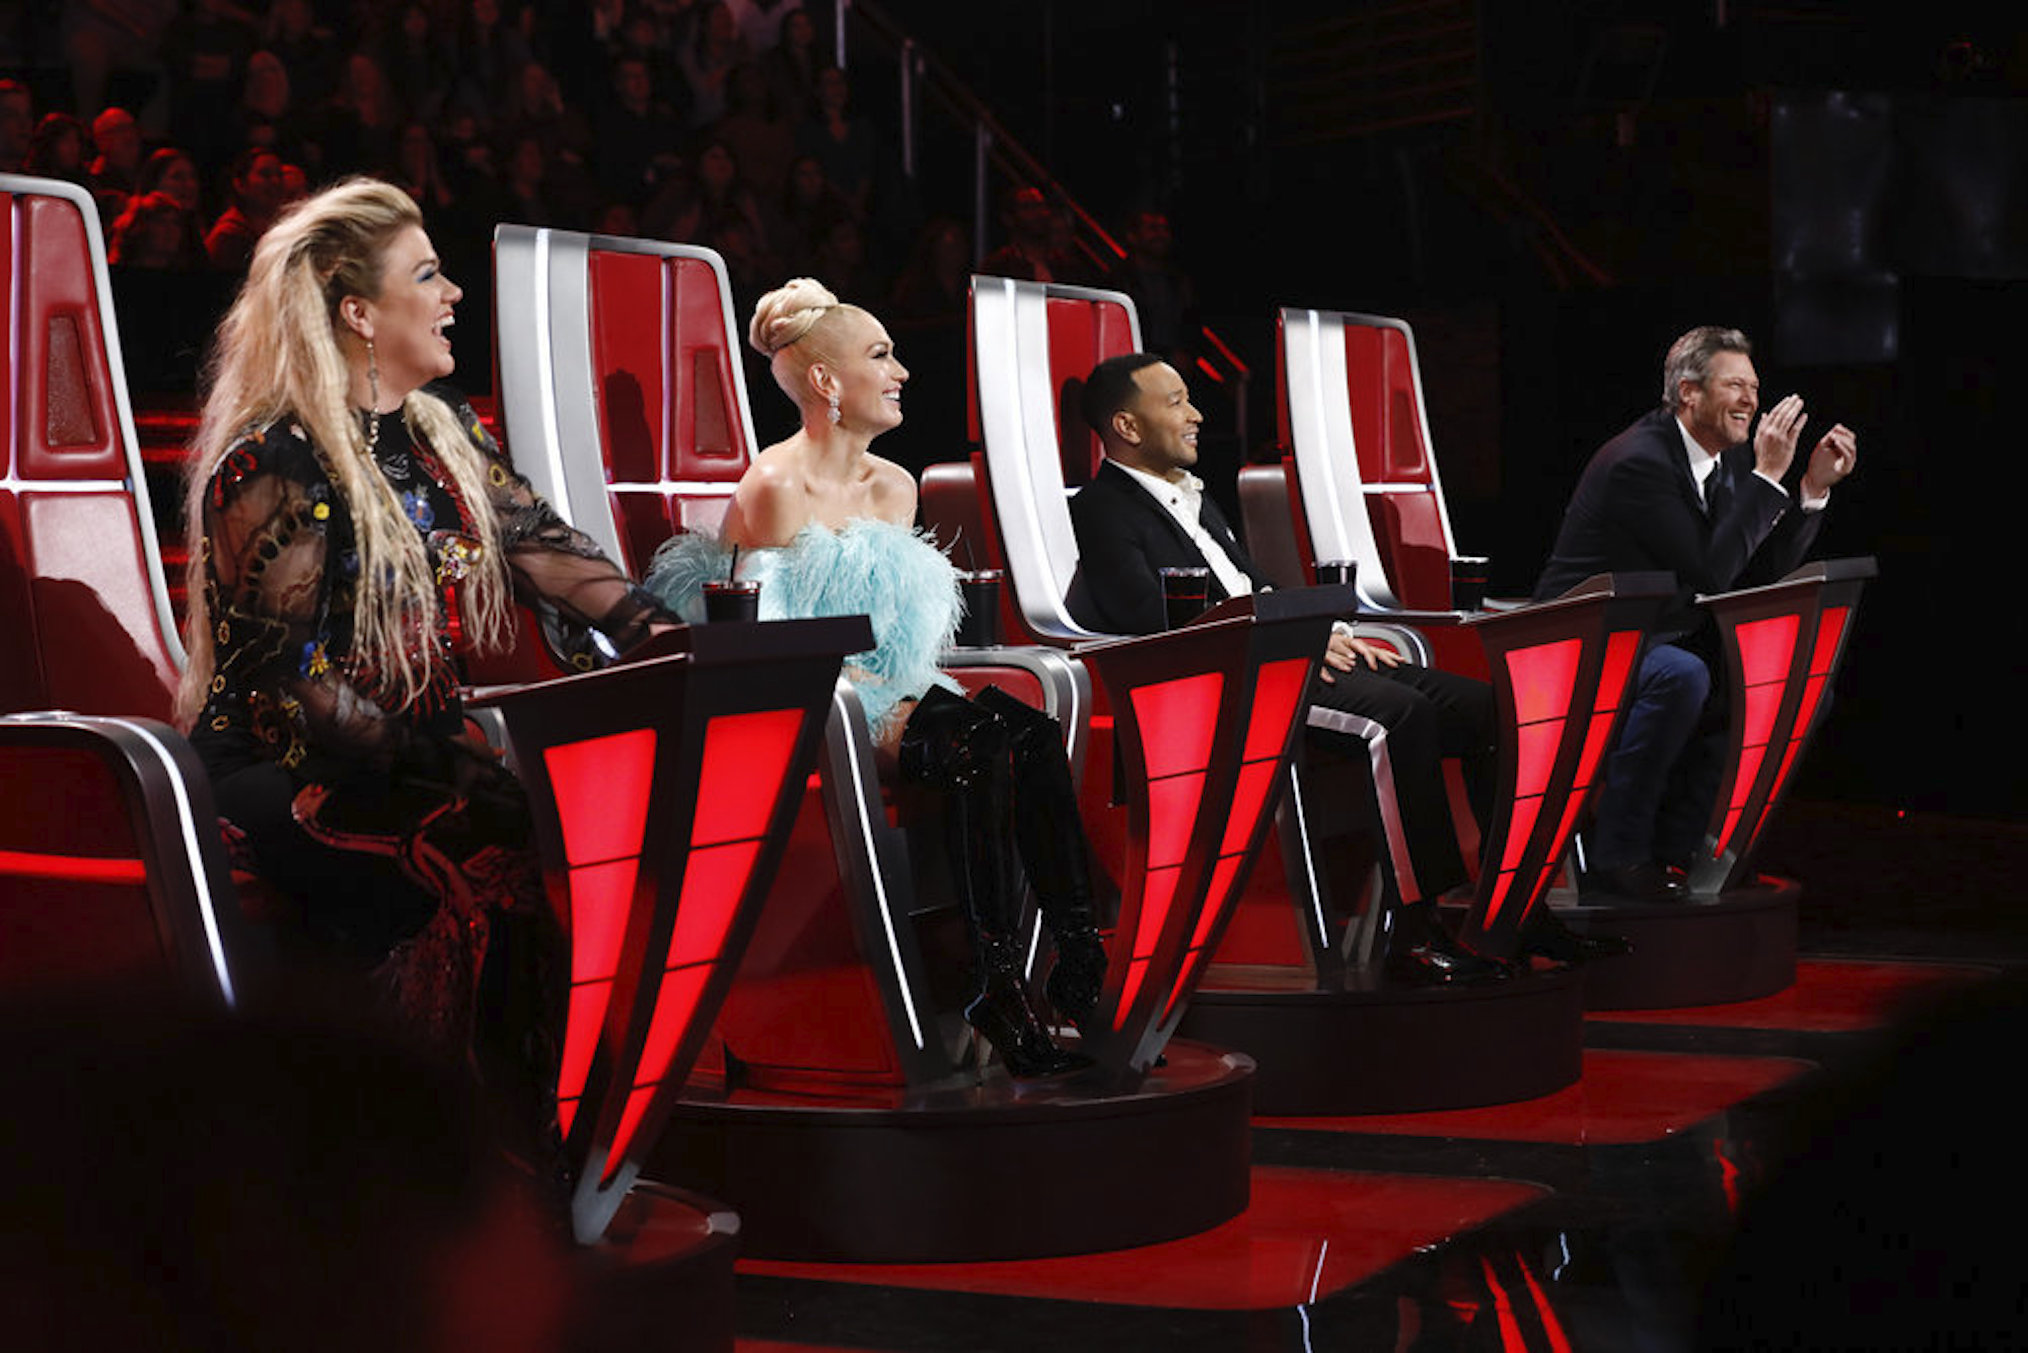 The Voice season 19: contestants, panel, spoilers and how to stream